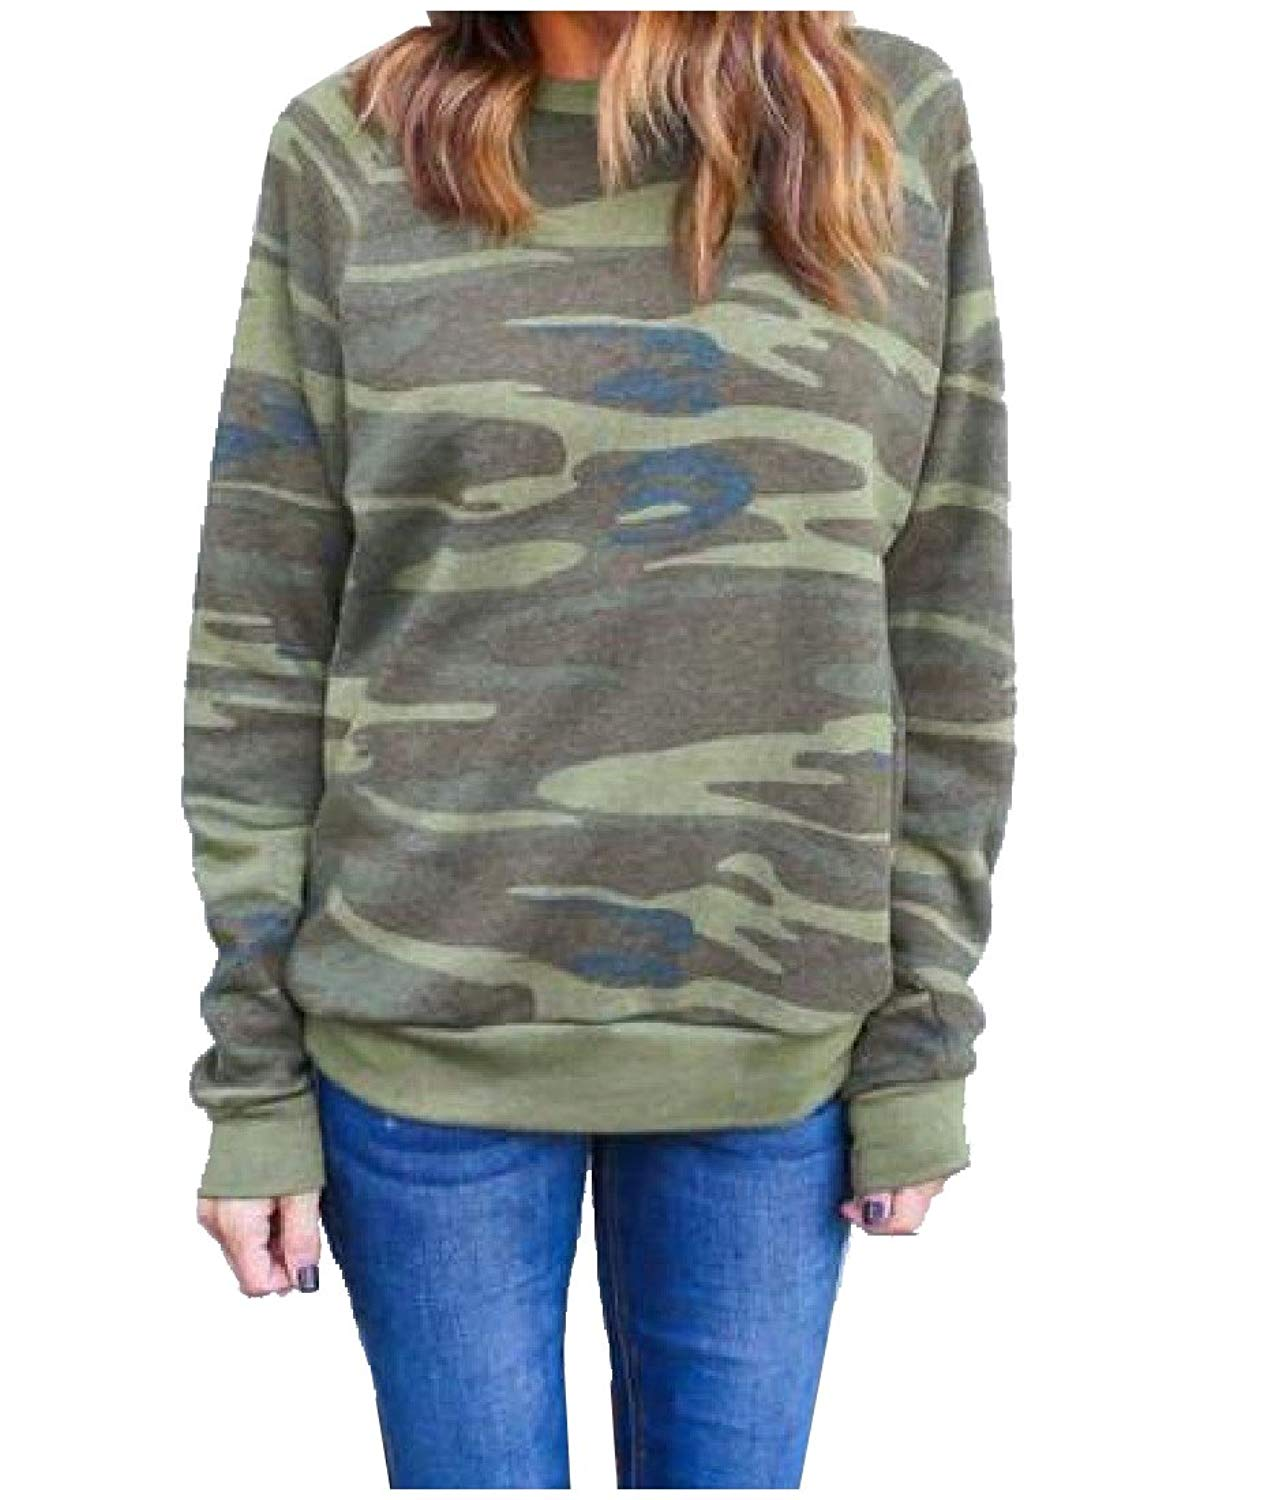 Sheng Xi Womens Outdoor Camouflage Printed Crewneck Sweater Pullover